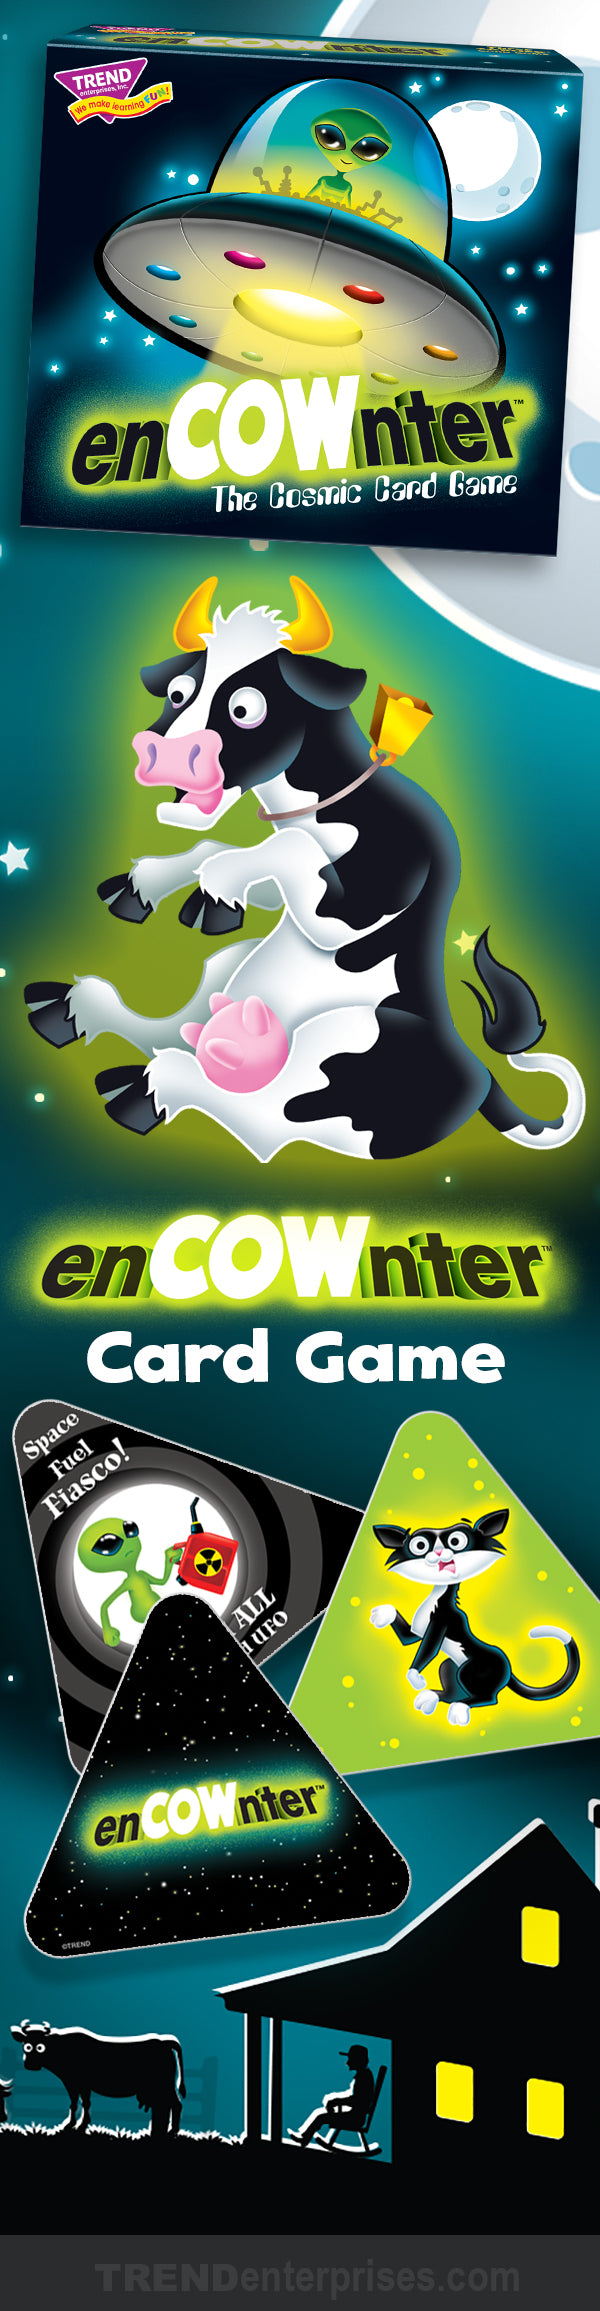 best new family game to play during the pandemic enCOWnter alien game